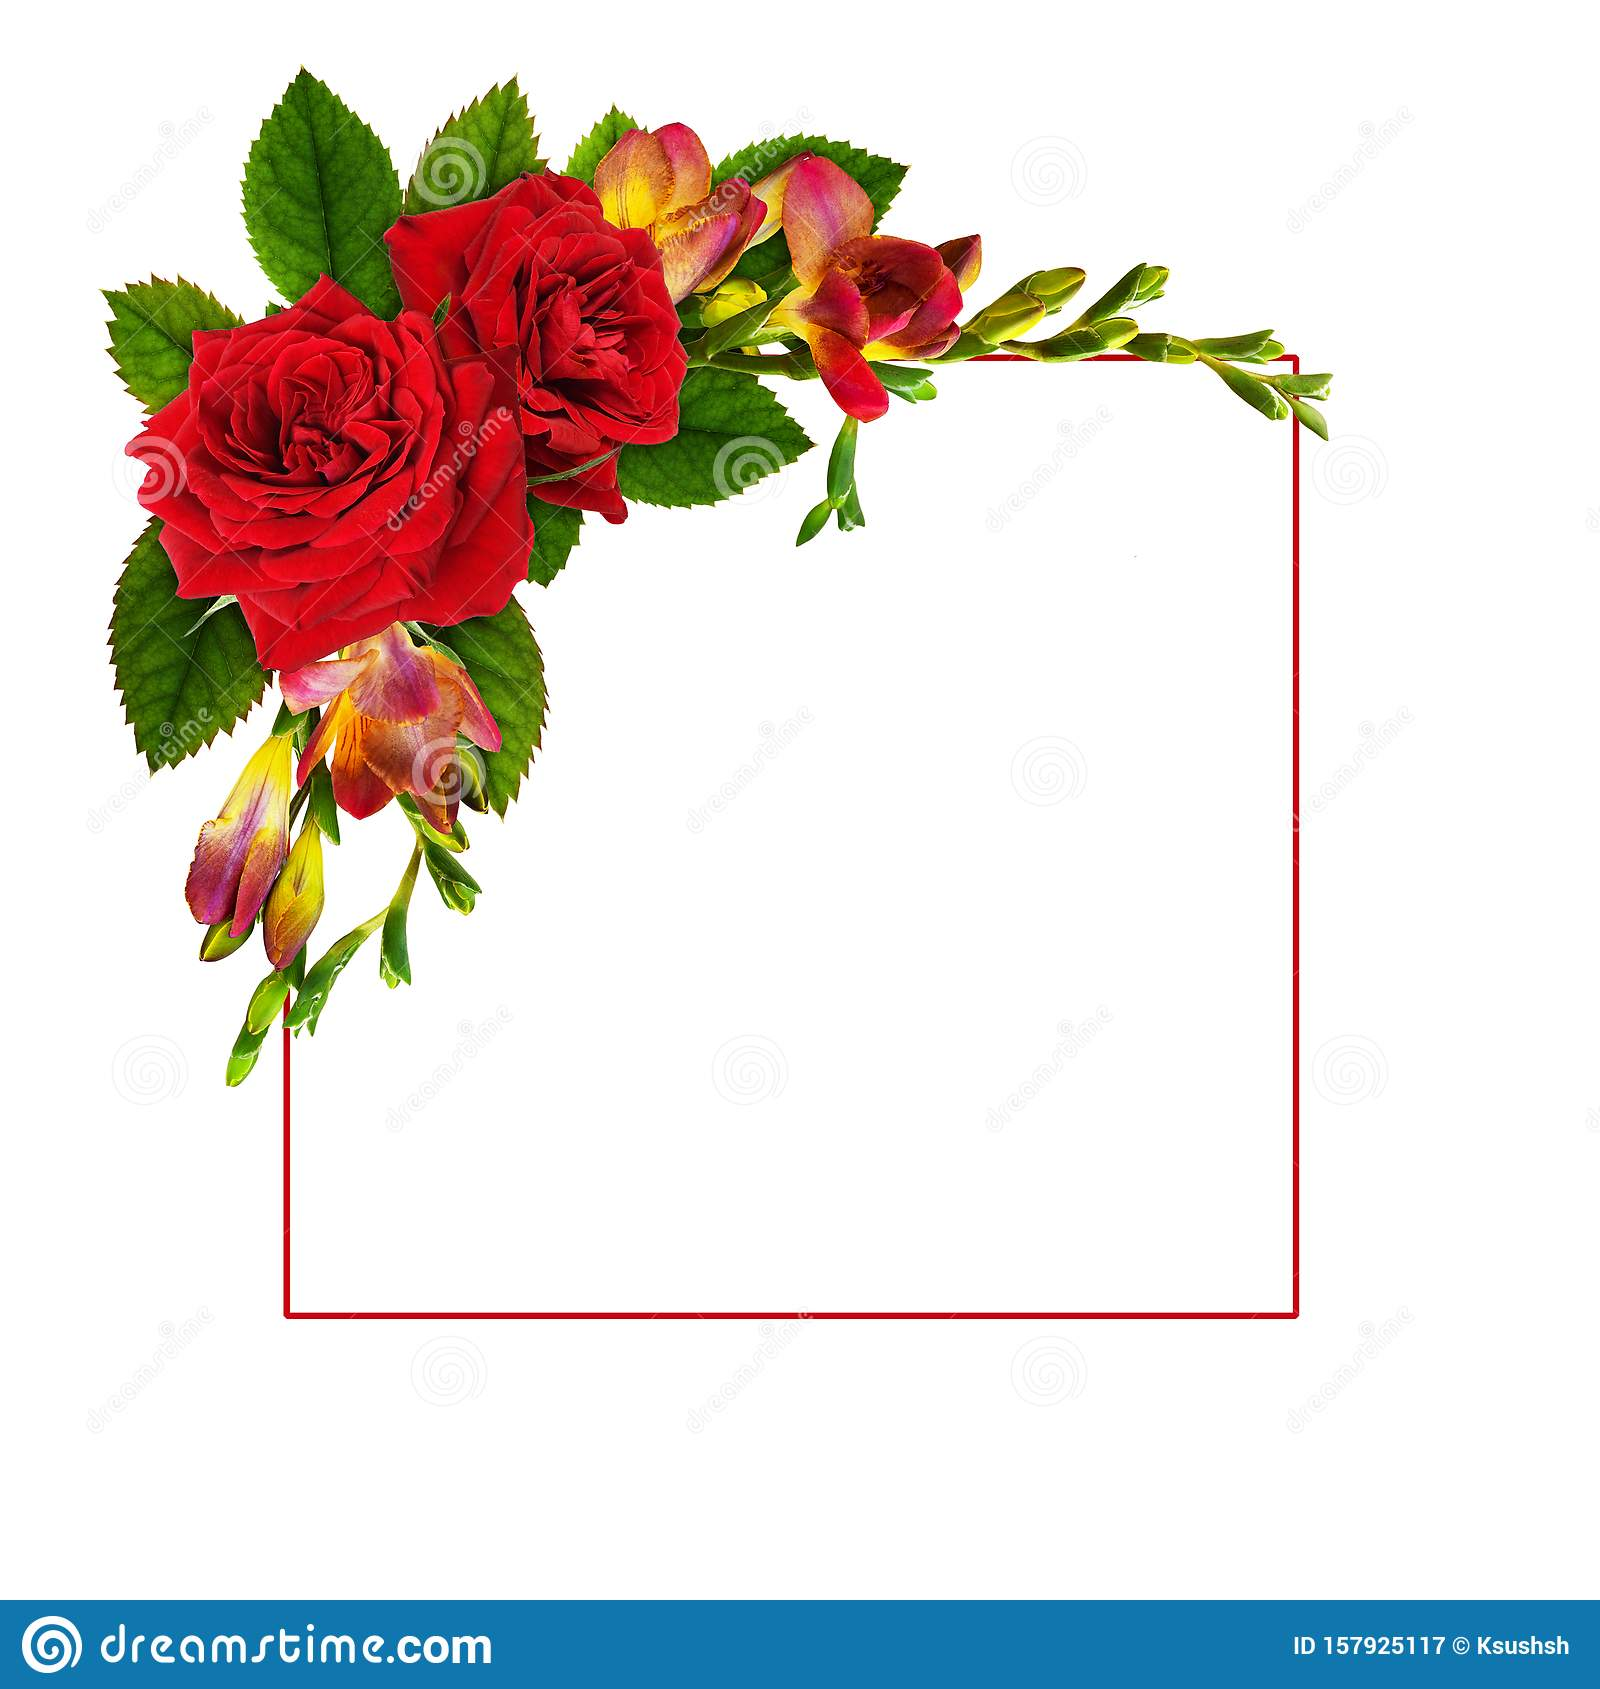 Red Roses And Freesia Flowers In A Floral Corner Arrangement With A Frame Stock Image Image Of Arrangement Damask 157925117